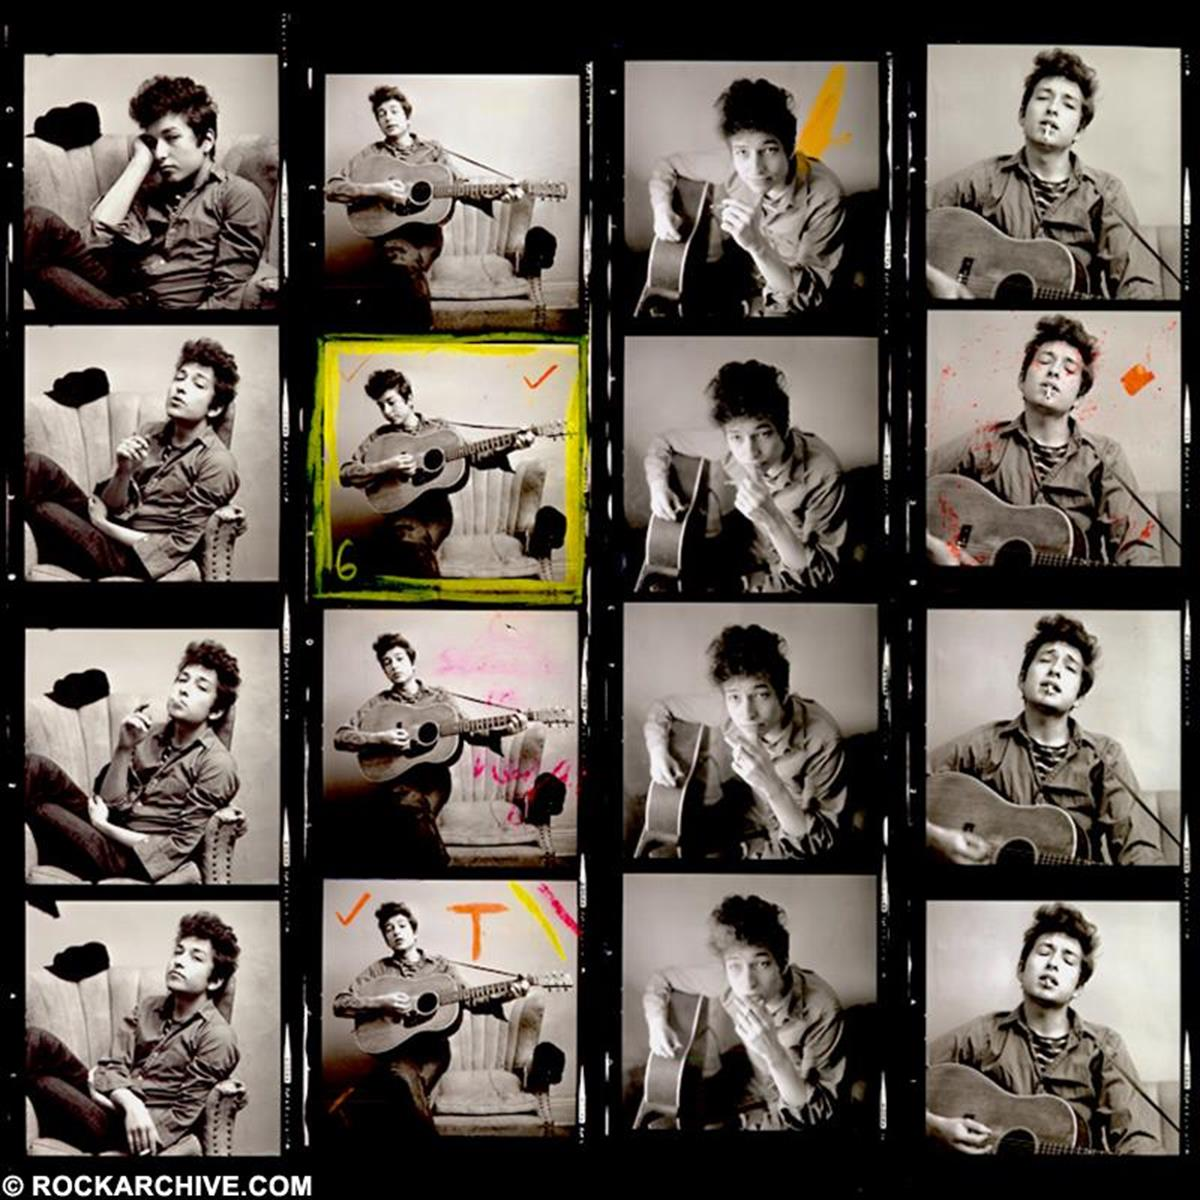 Early set of contact sheet photos by Don Hunstein taken of Bob Dylan in his New York apartment on West 4th Street in 1963. © Don Hunstein